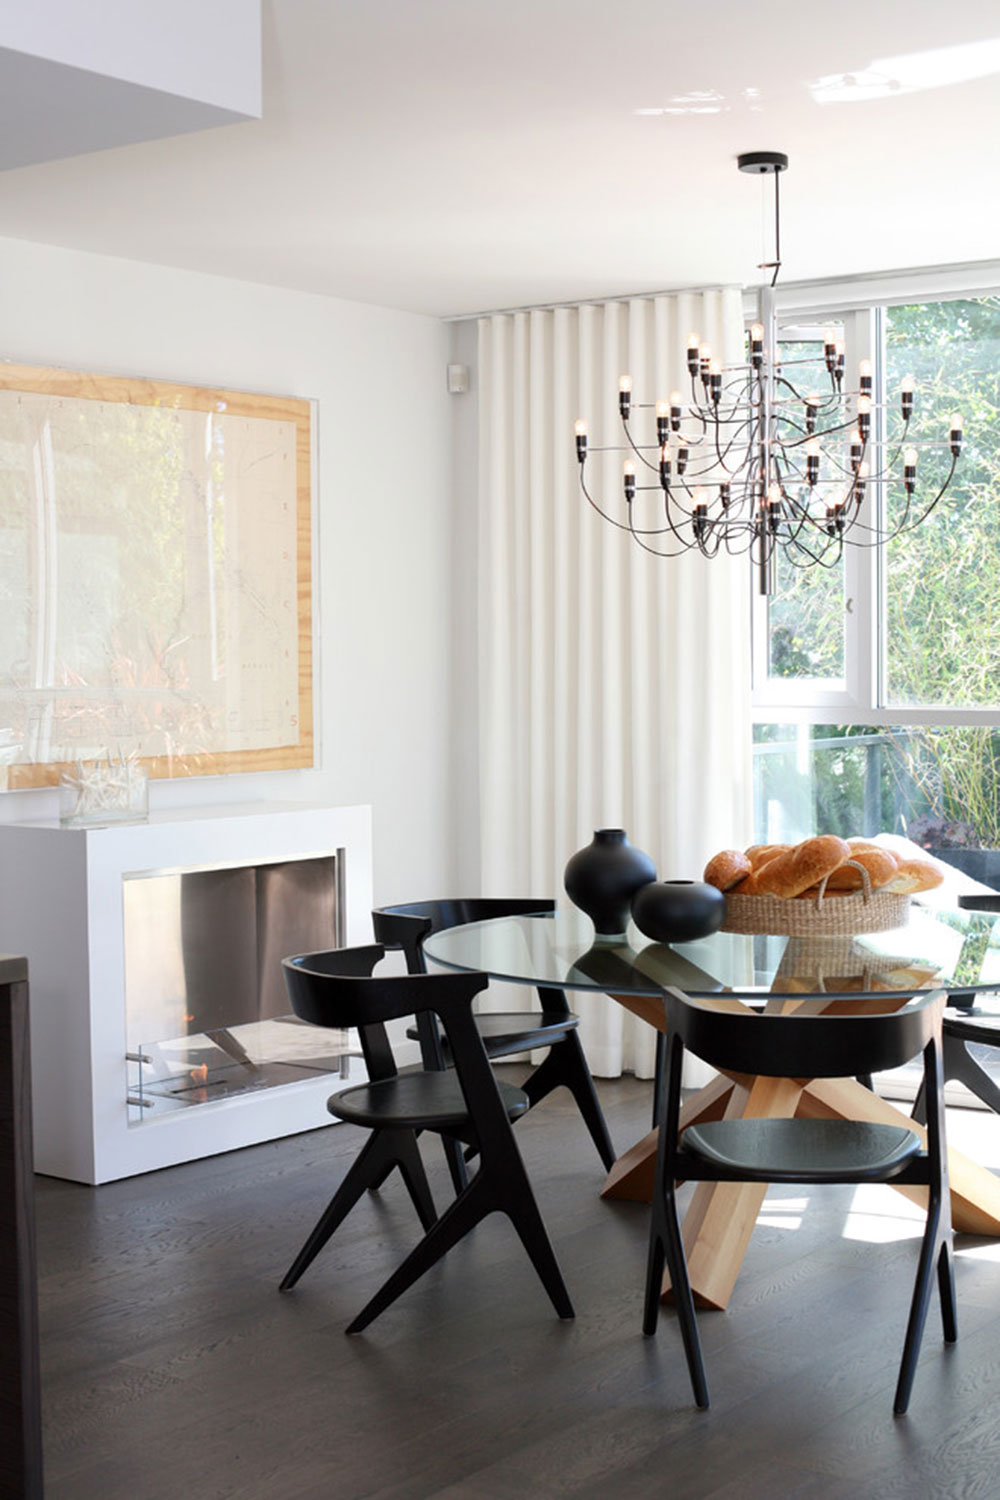 Make your interior more expensive and represent you4 Make your interior more expensive